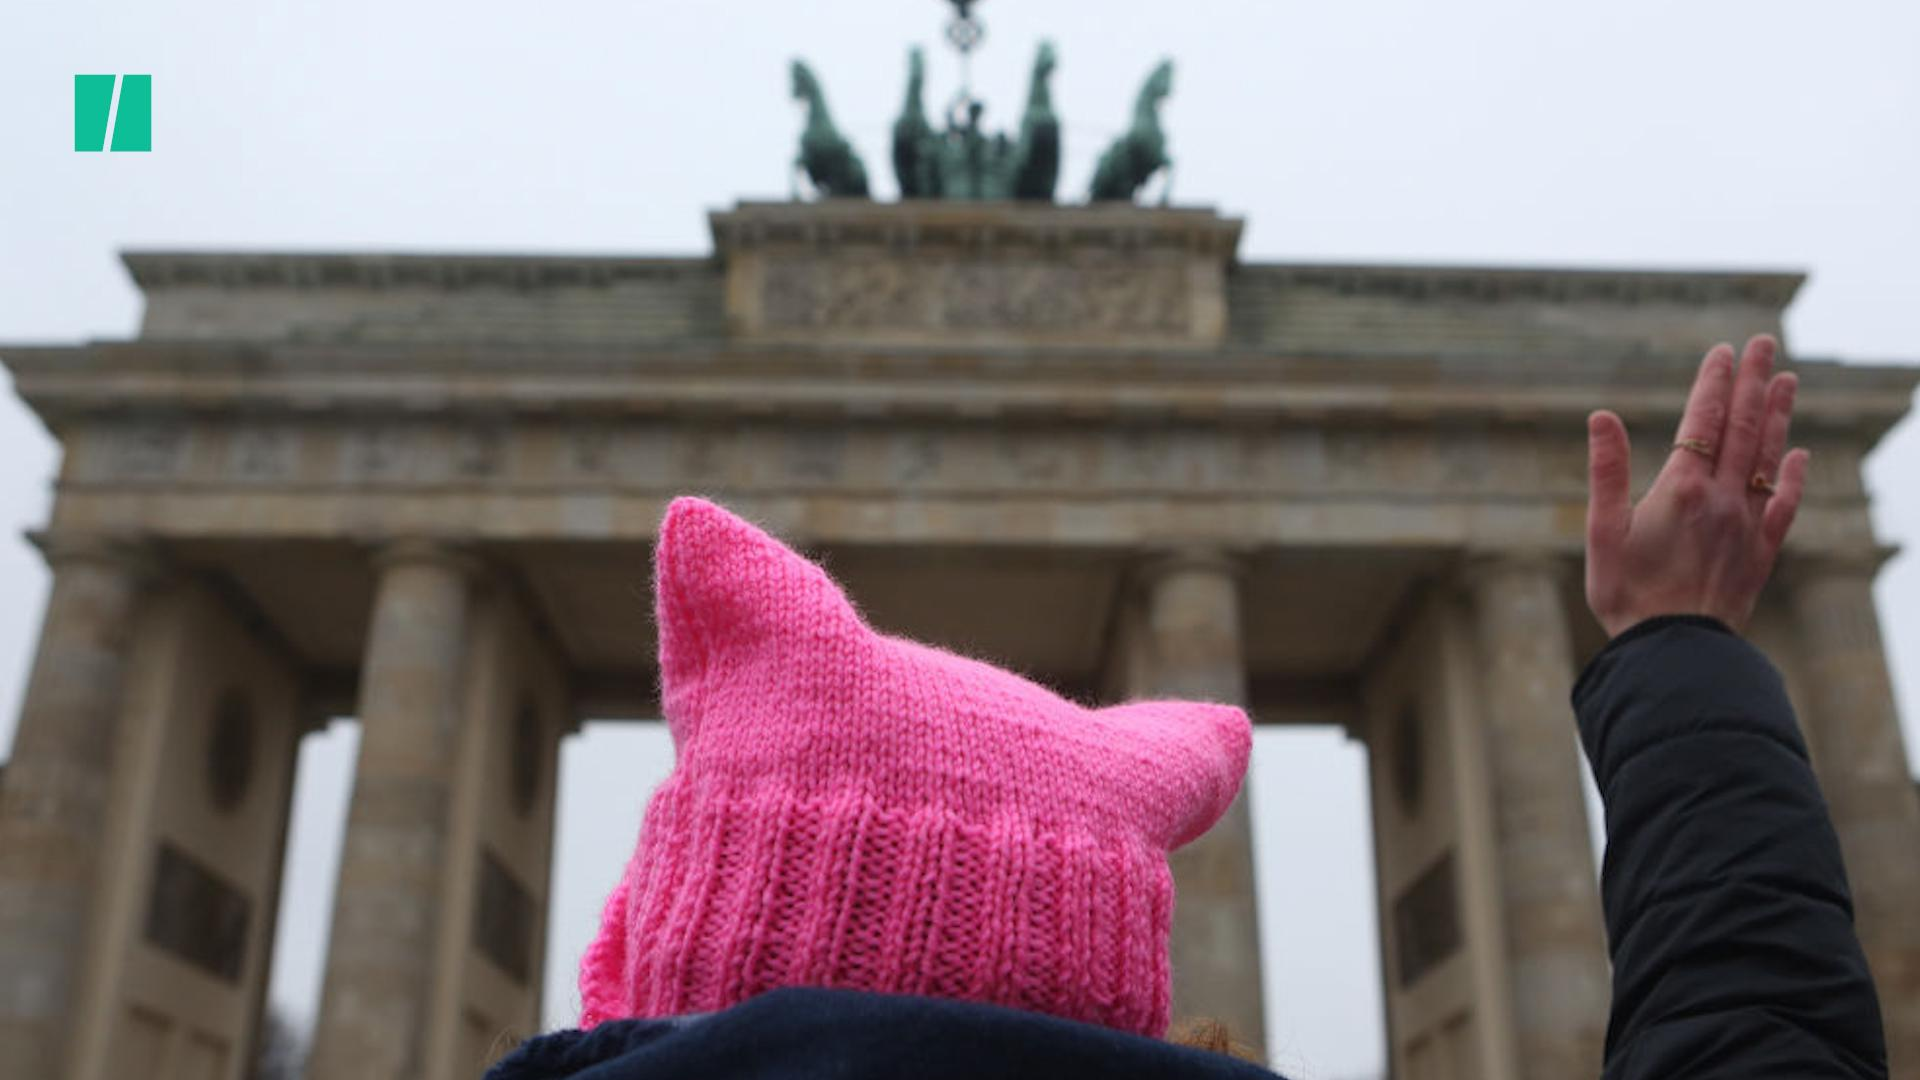 Rebel Knitting: The Crafting Spaces Tackling Politics And Social Issues